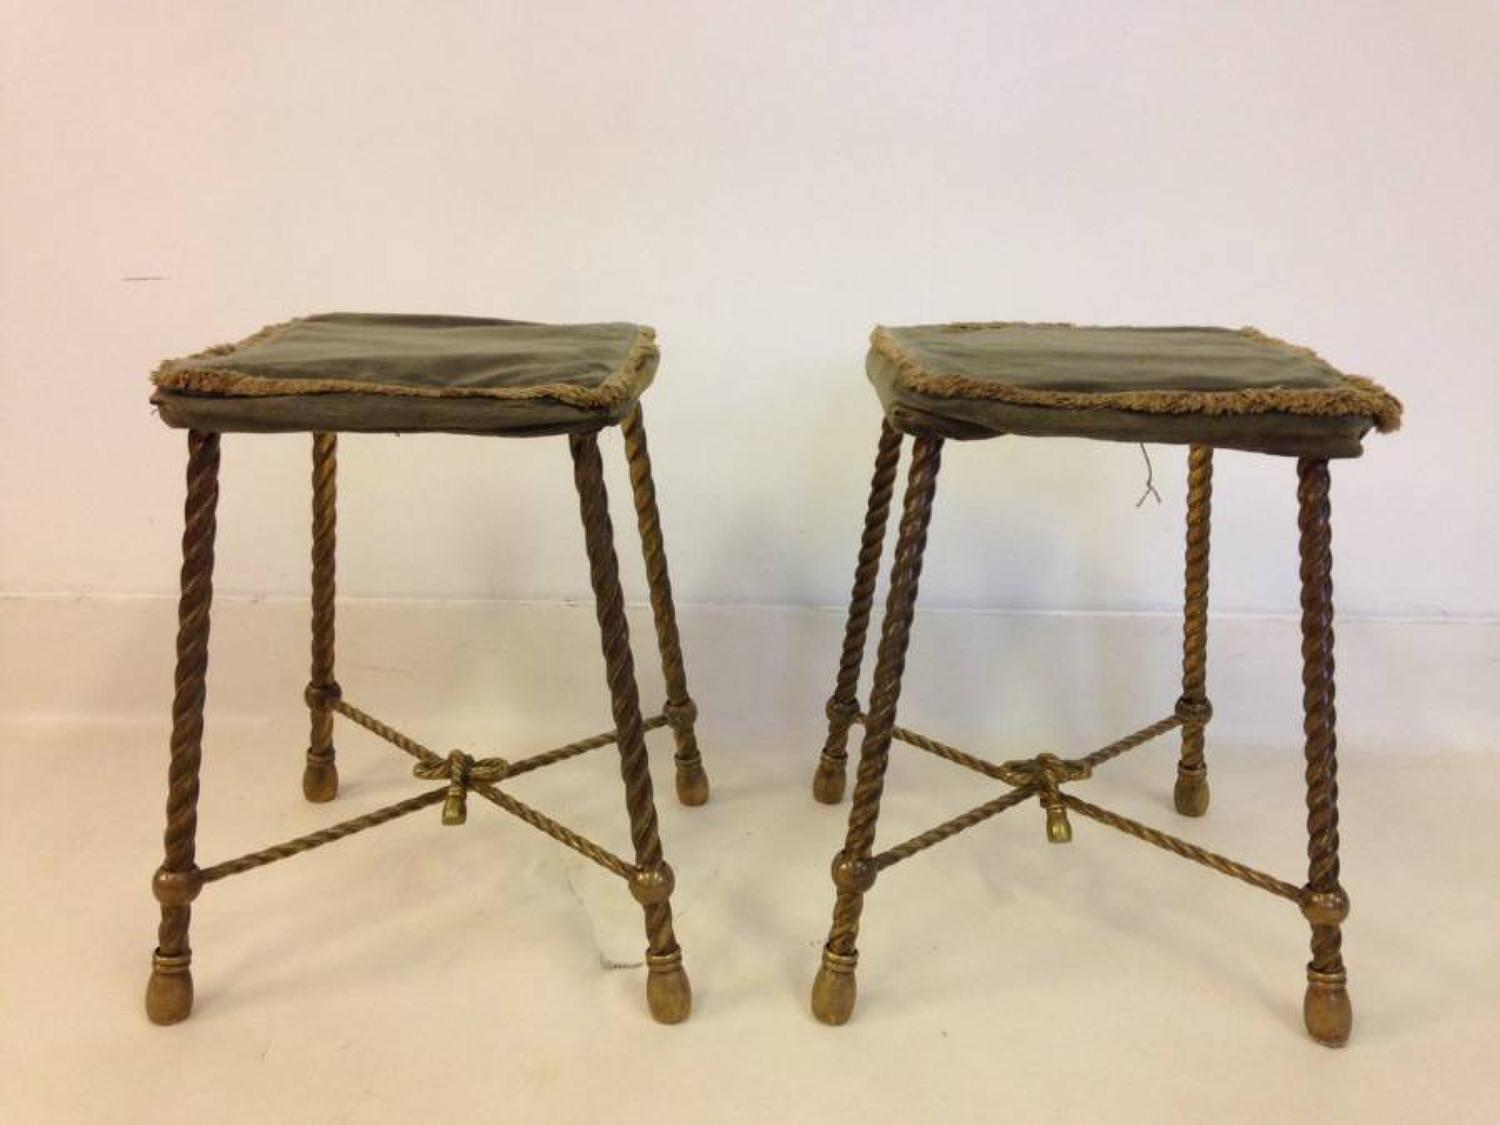 A pair of brass rope twist stools